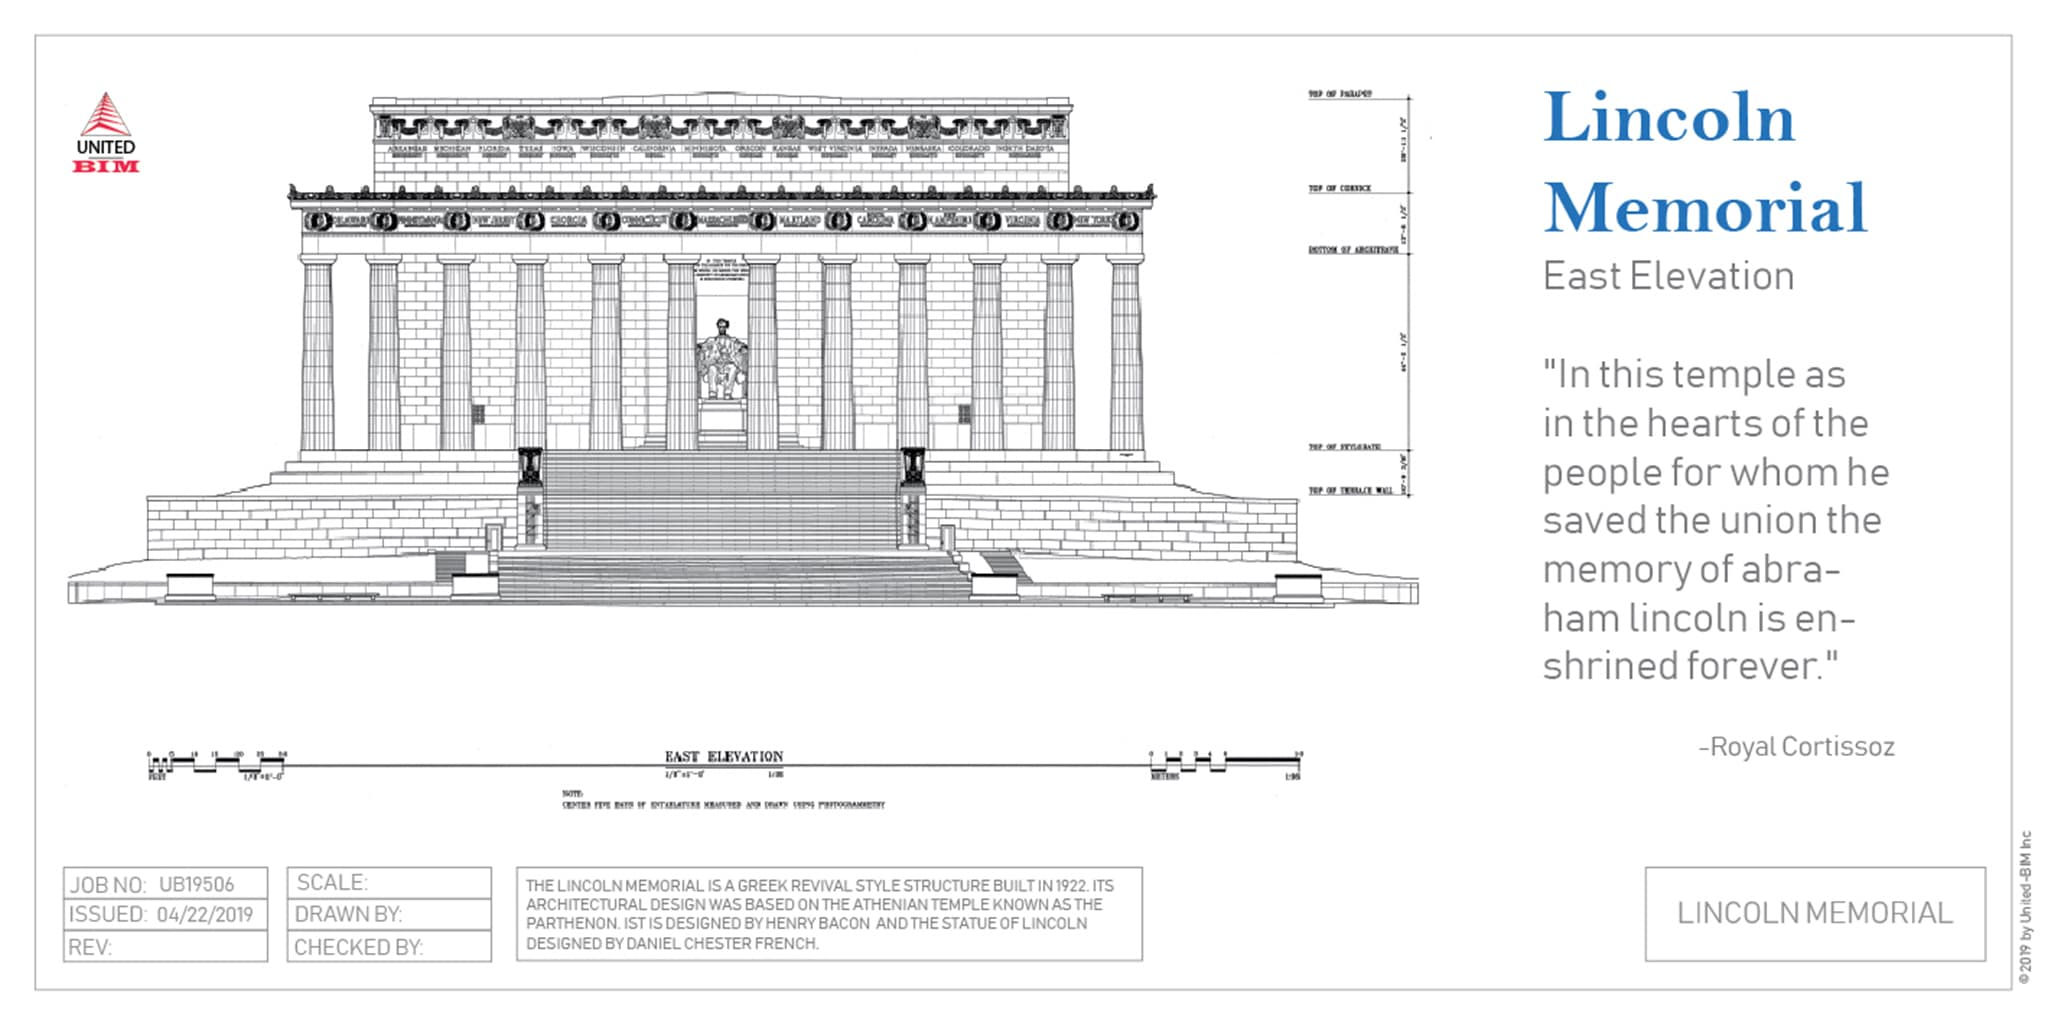 Lincoln Memorial- East Elevation